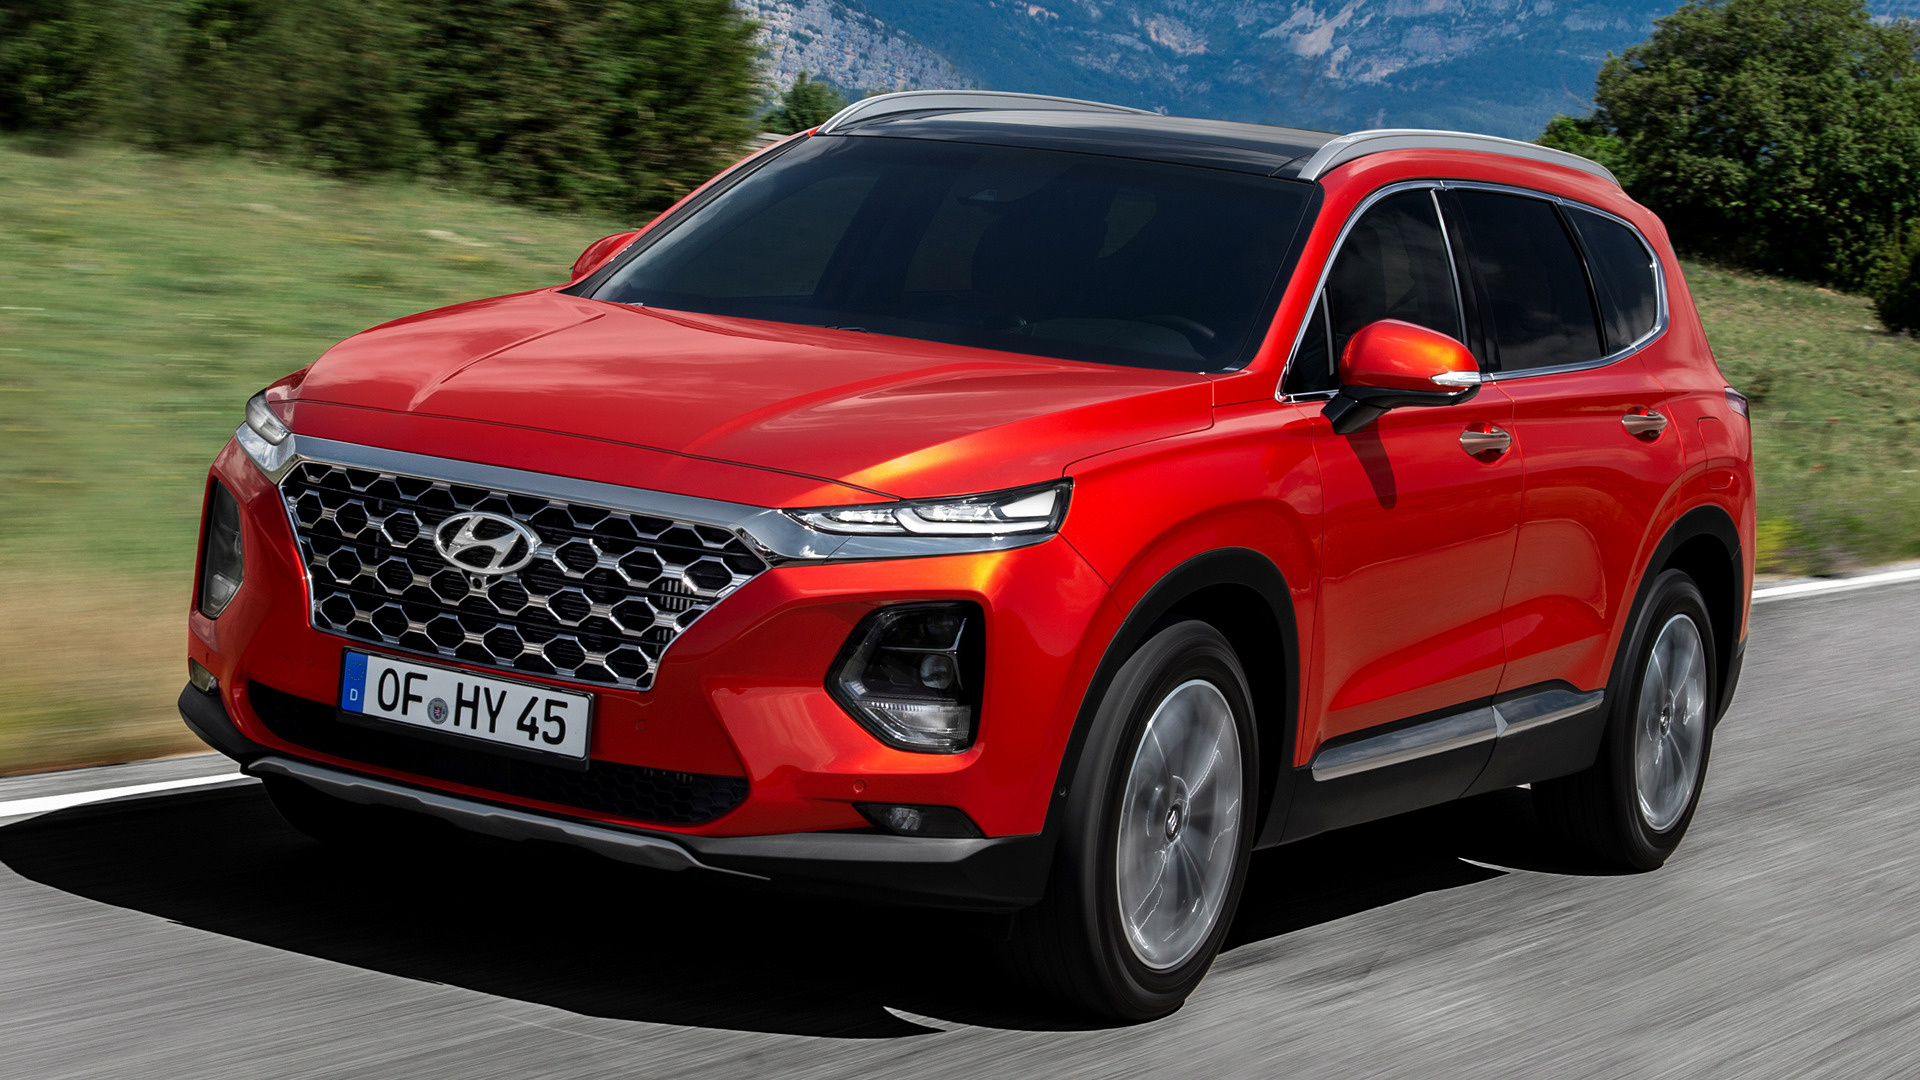 Chevrolet Santa Fe >> 2018 Hyundai Santa Fe - Wallpapers and HD Images | Car Pixel